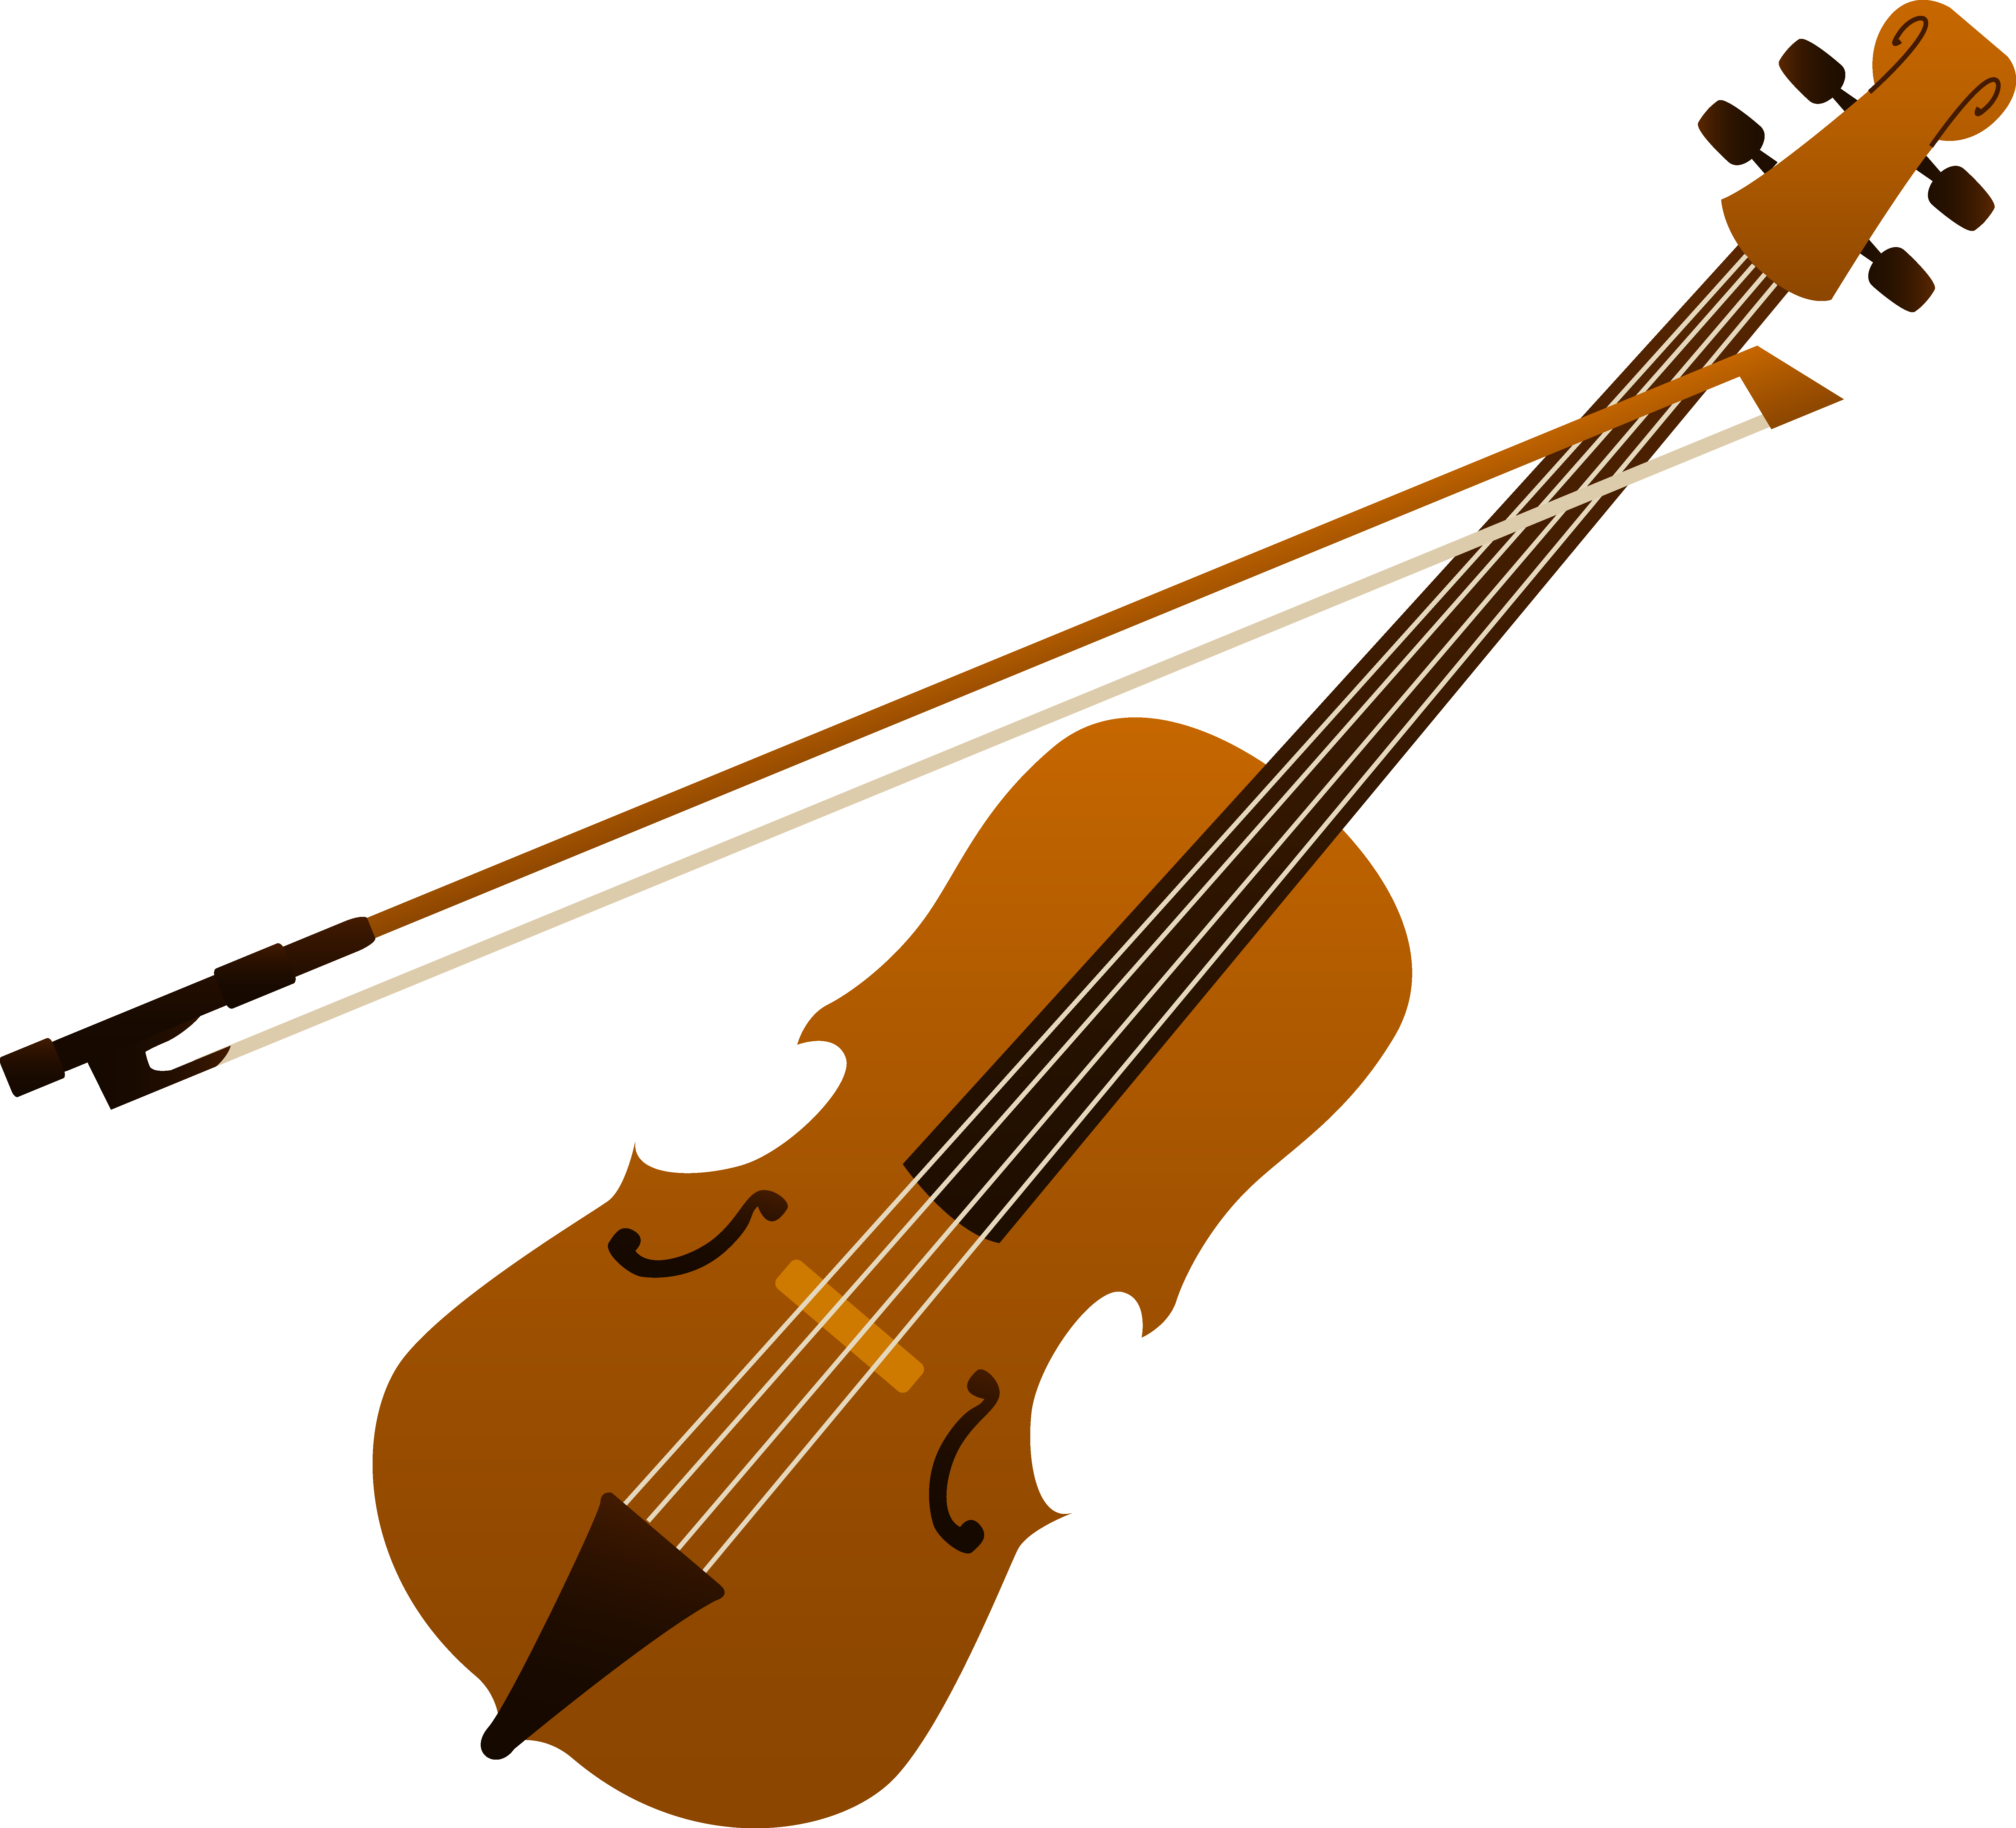 Violin clipart animated. Instrument